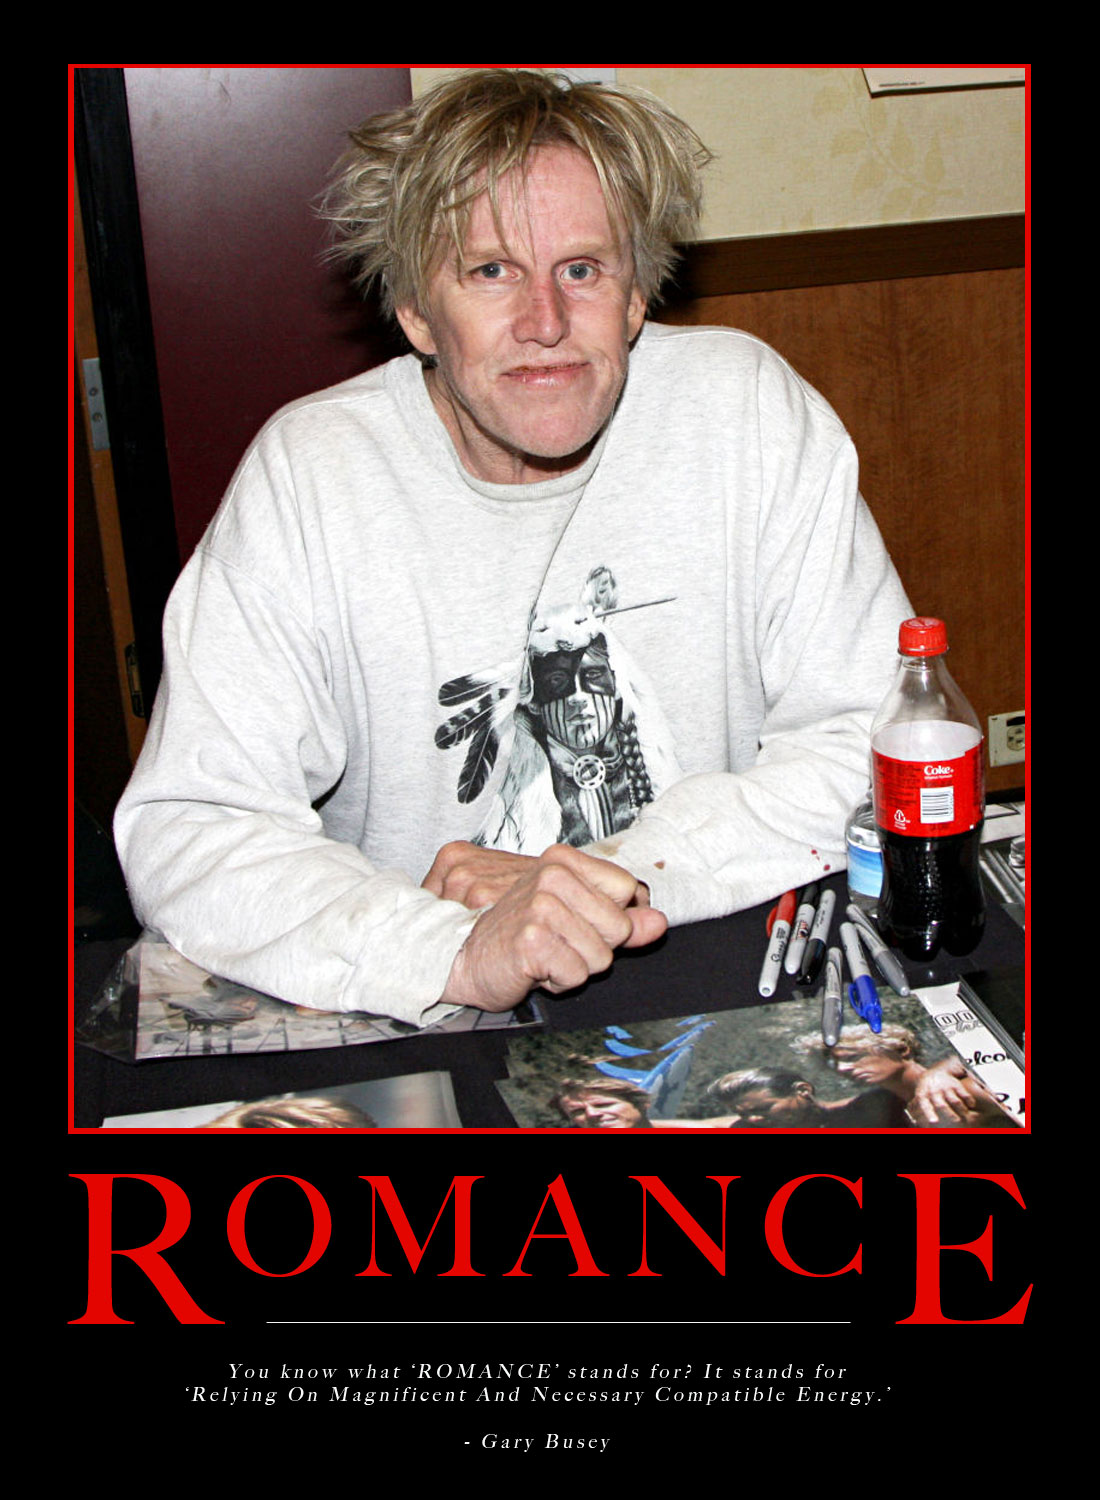 Gary Busey's quote #3